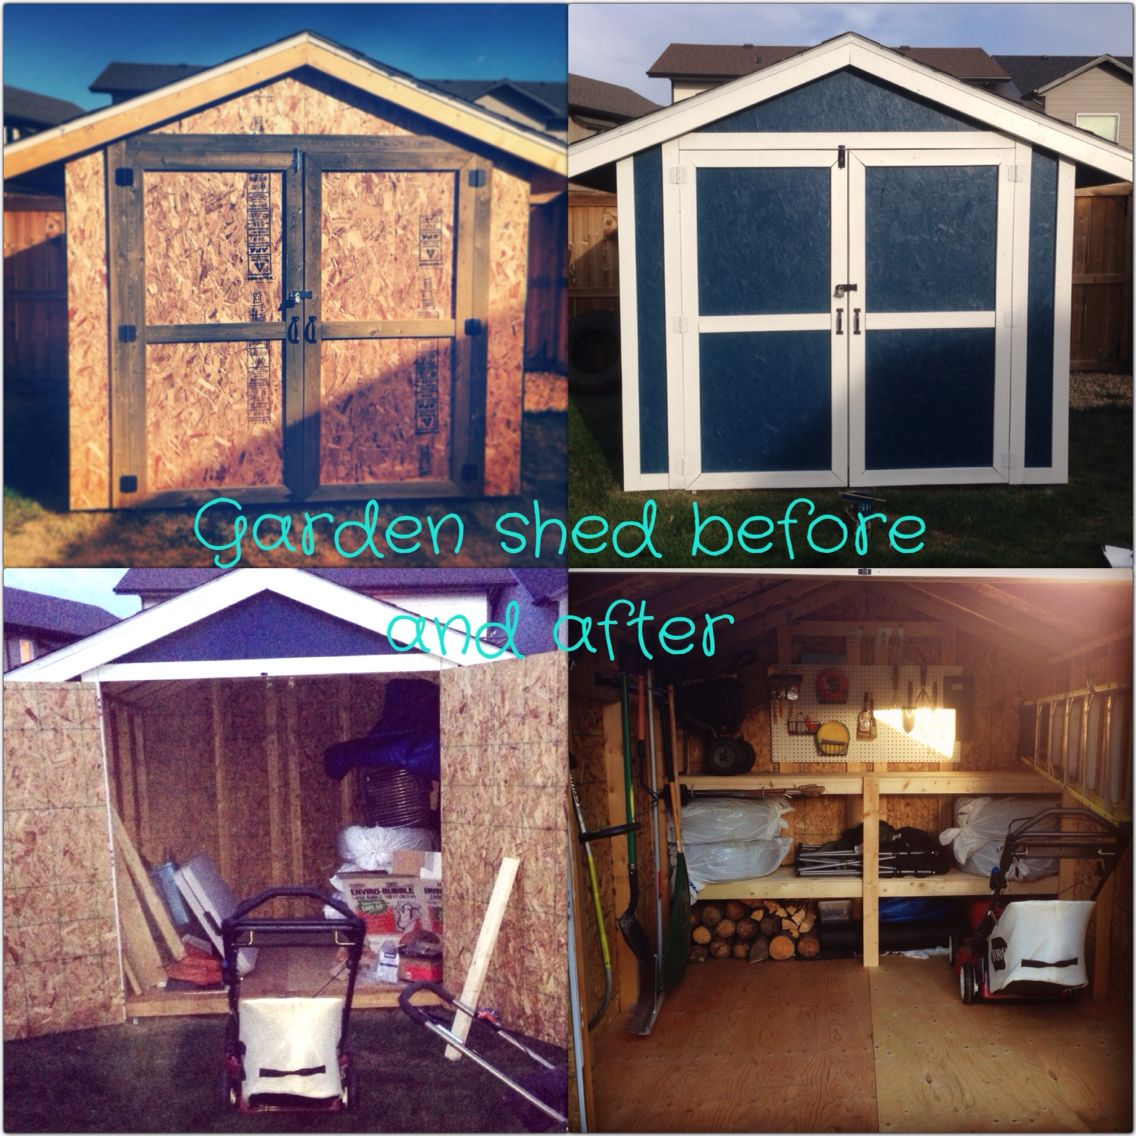 """Painted the shed. Built shelving (about 5-2x4""""x8' . And one sheet of 8x4' 1/2"""" ply wood) $20 at rona for rack to hang shovels & rakes. $7 dollars for the peg board. peg board Hooks and baskets bought at Rona. Used bike hooks to hang hot dog roaster and brackets to hang the ladder. In order to hang the weed whacker was harder since it had a weird metal piece on the back that needed to fit into some sort of sleeve. So we bought a small gate handle for it to slip into. Worked like a charm  ;)"""